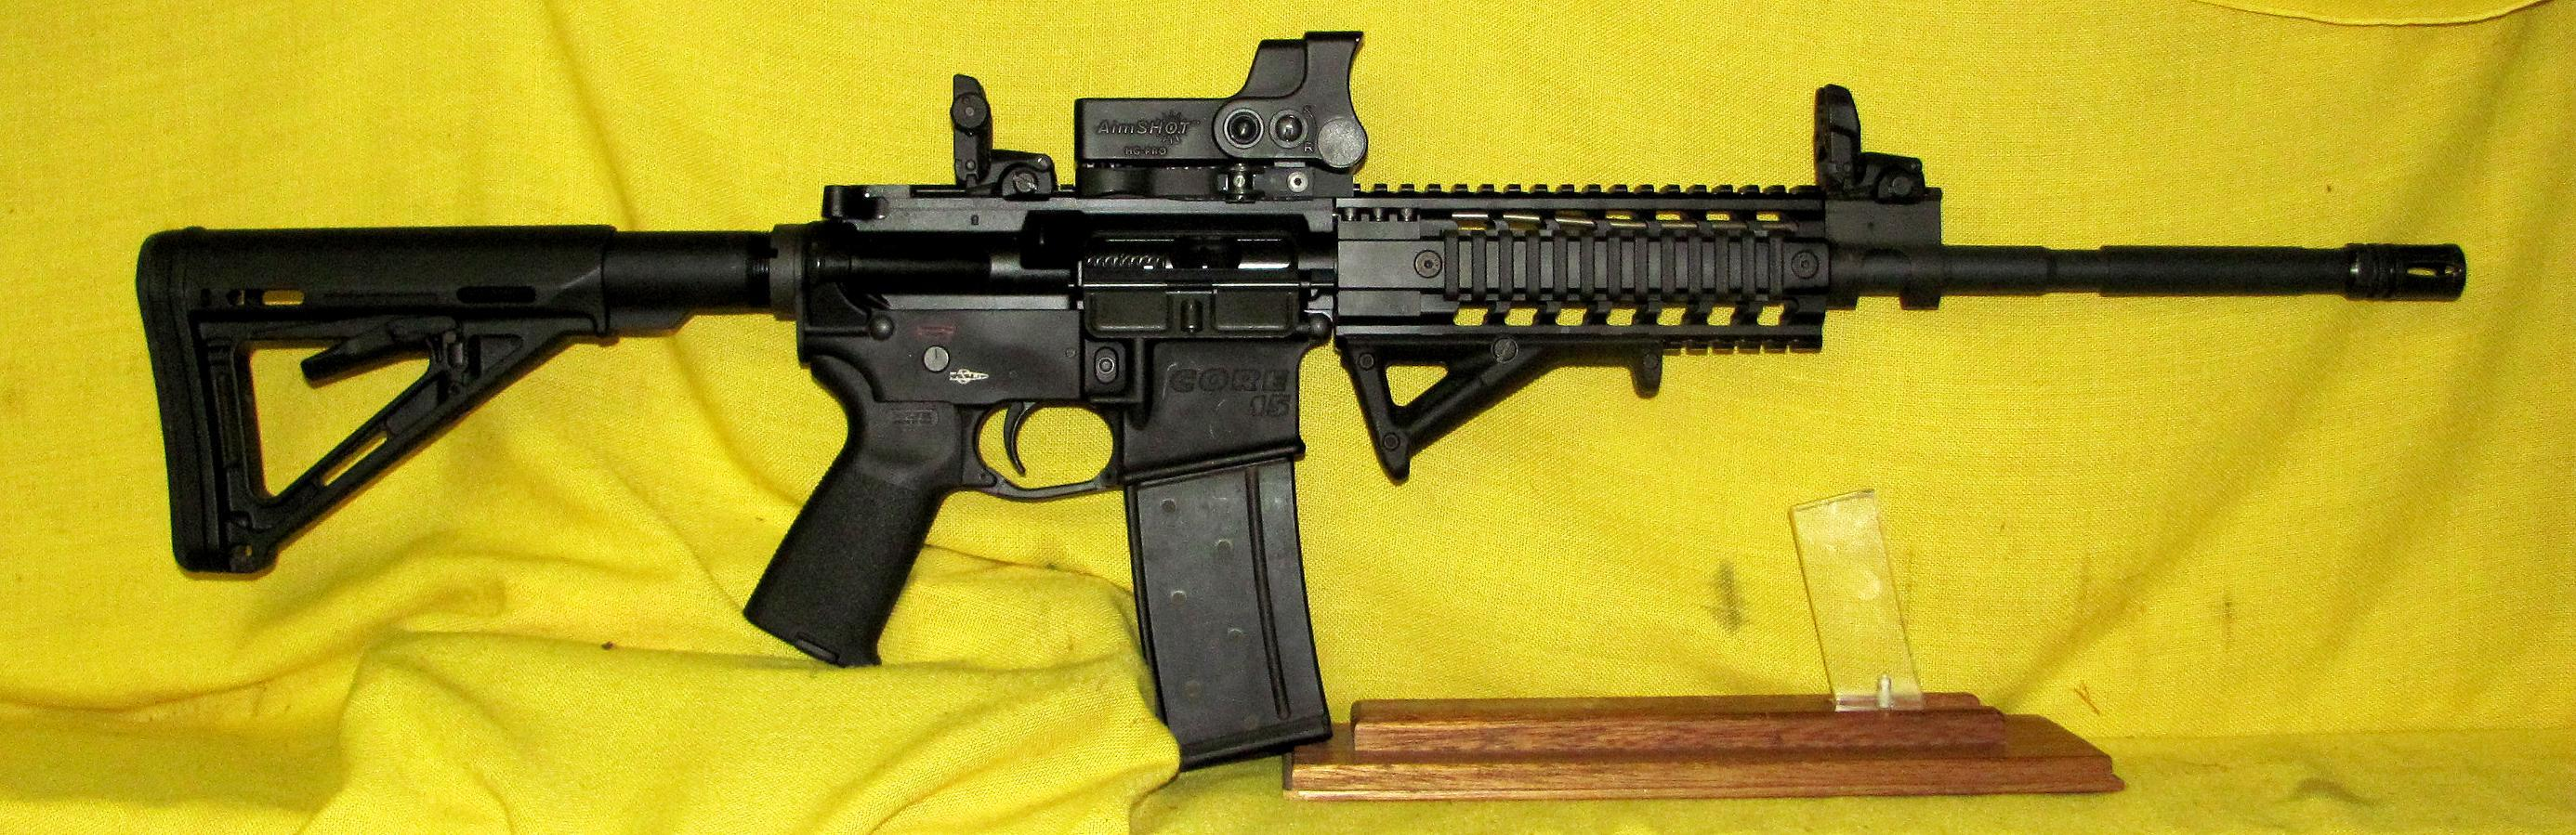 CXV CORE 15  Guns > Rifles > AR-15 Rifles - Small Manufacturers > Complete Rifle